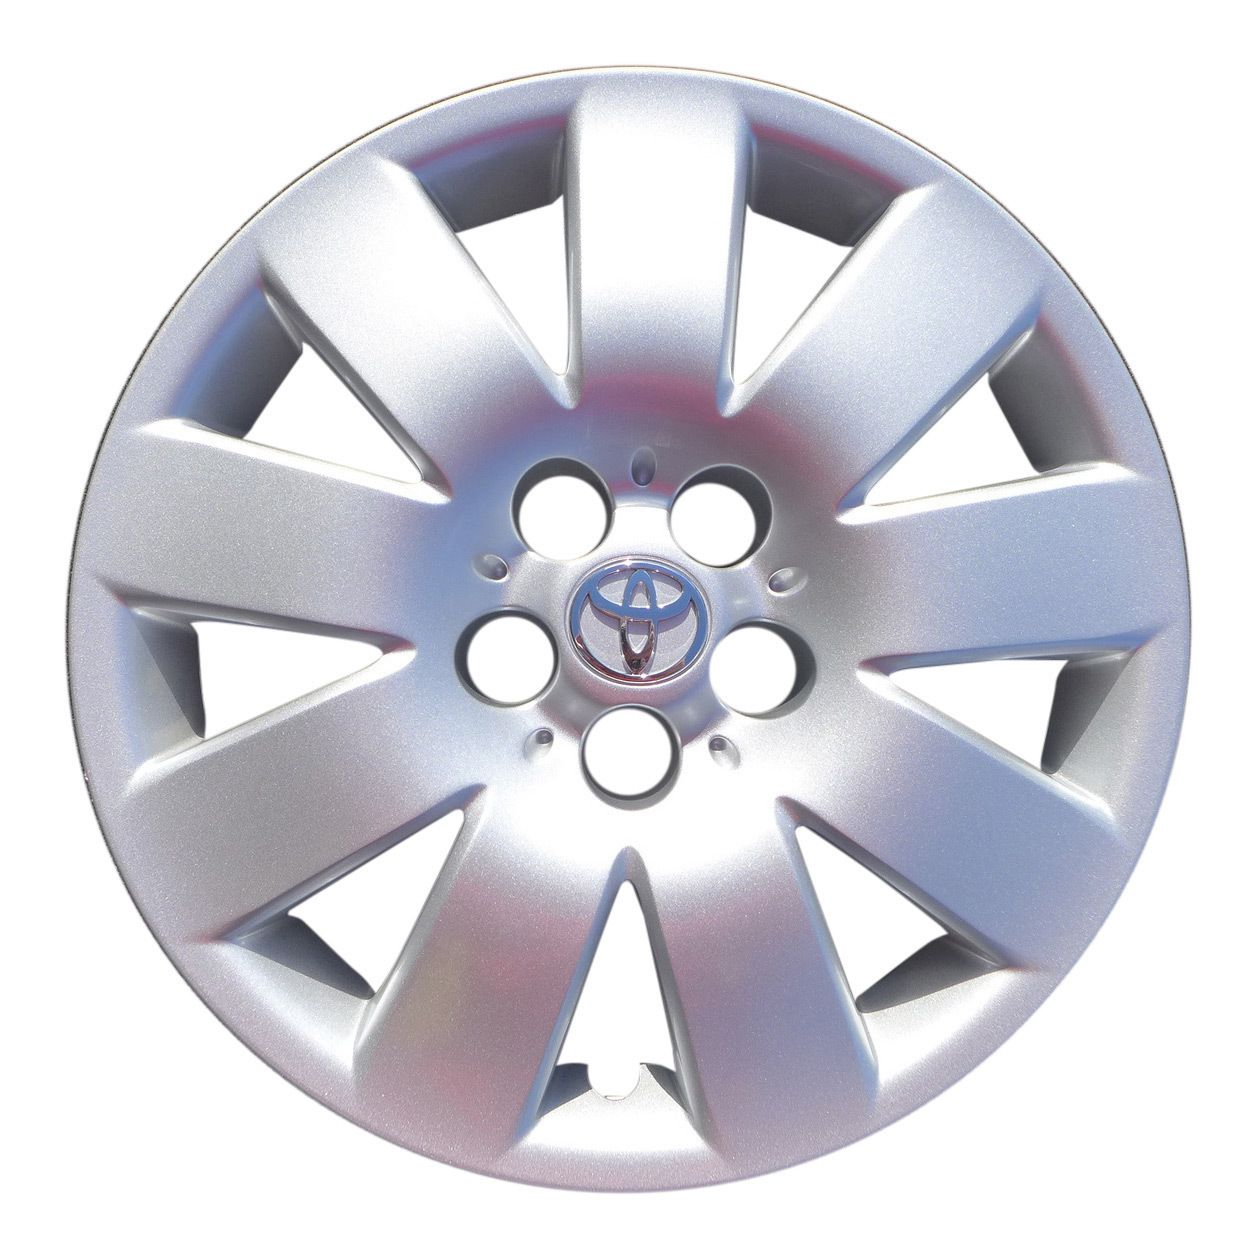 Brand new 2003 2004 toyota corolla hubcap wheel cover 15 61123